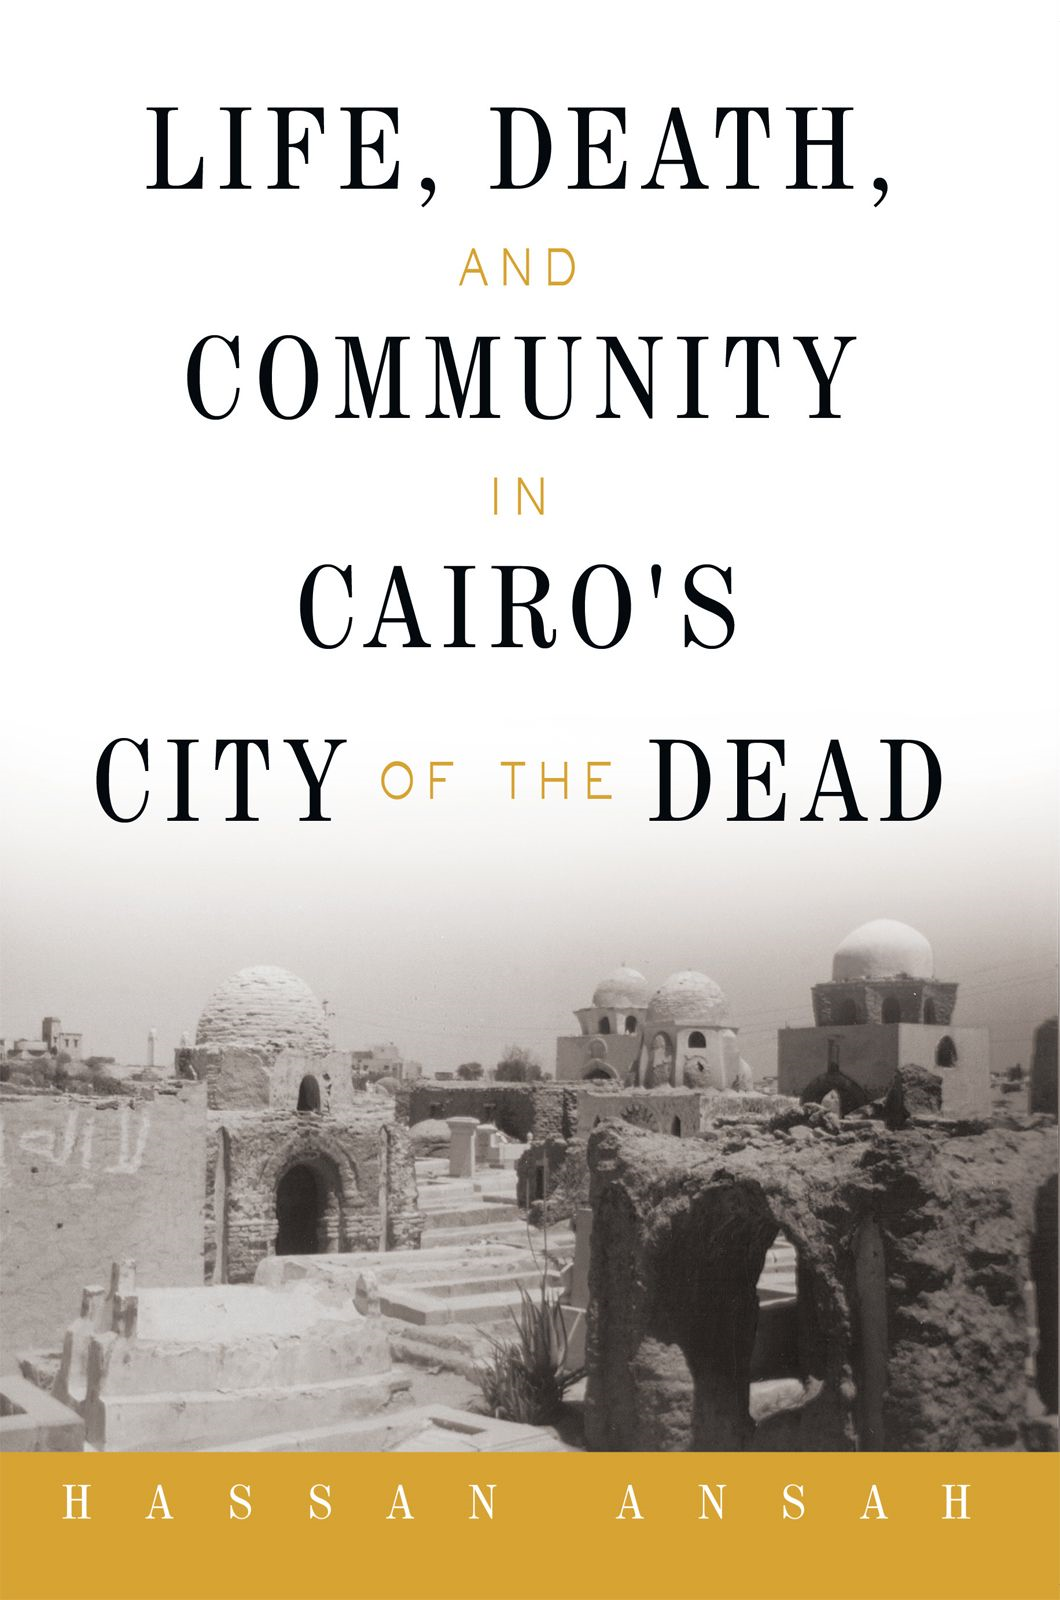 Life Death And Community In Cairo's City Of The Dead